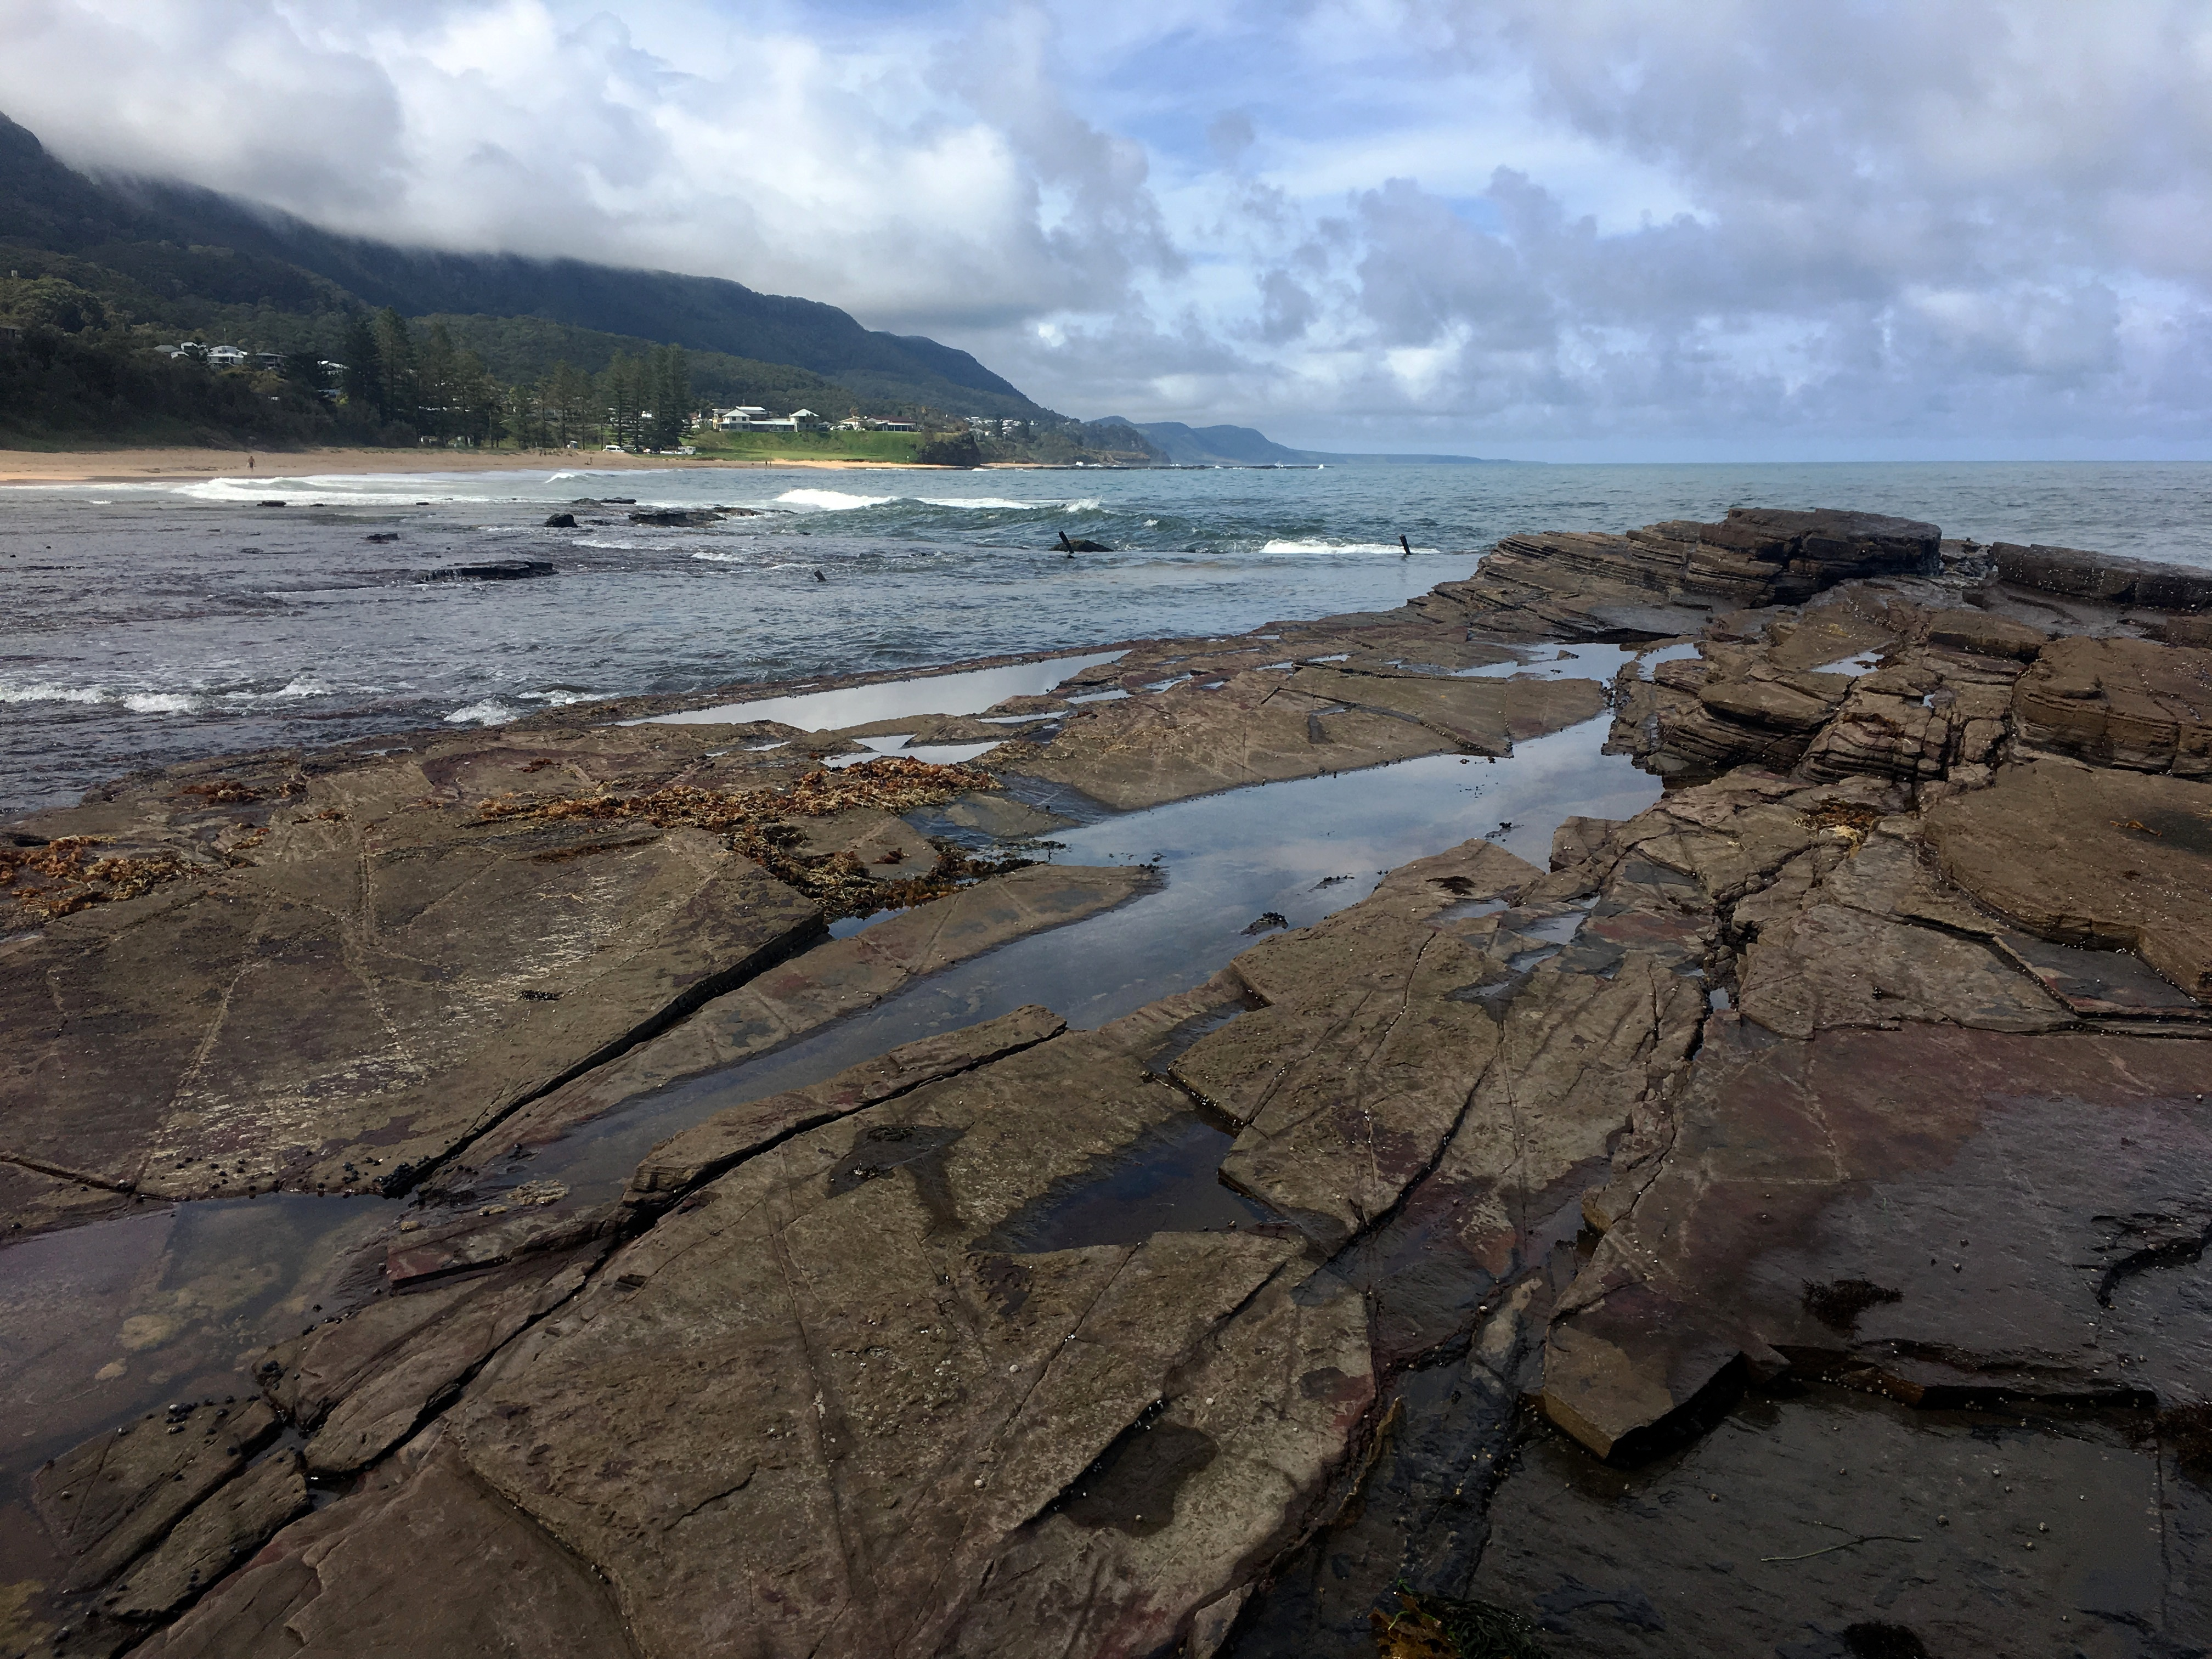 The eastern australia coast photo